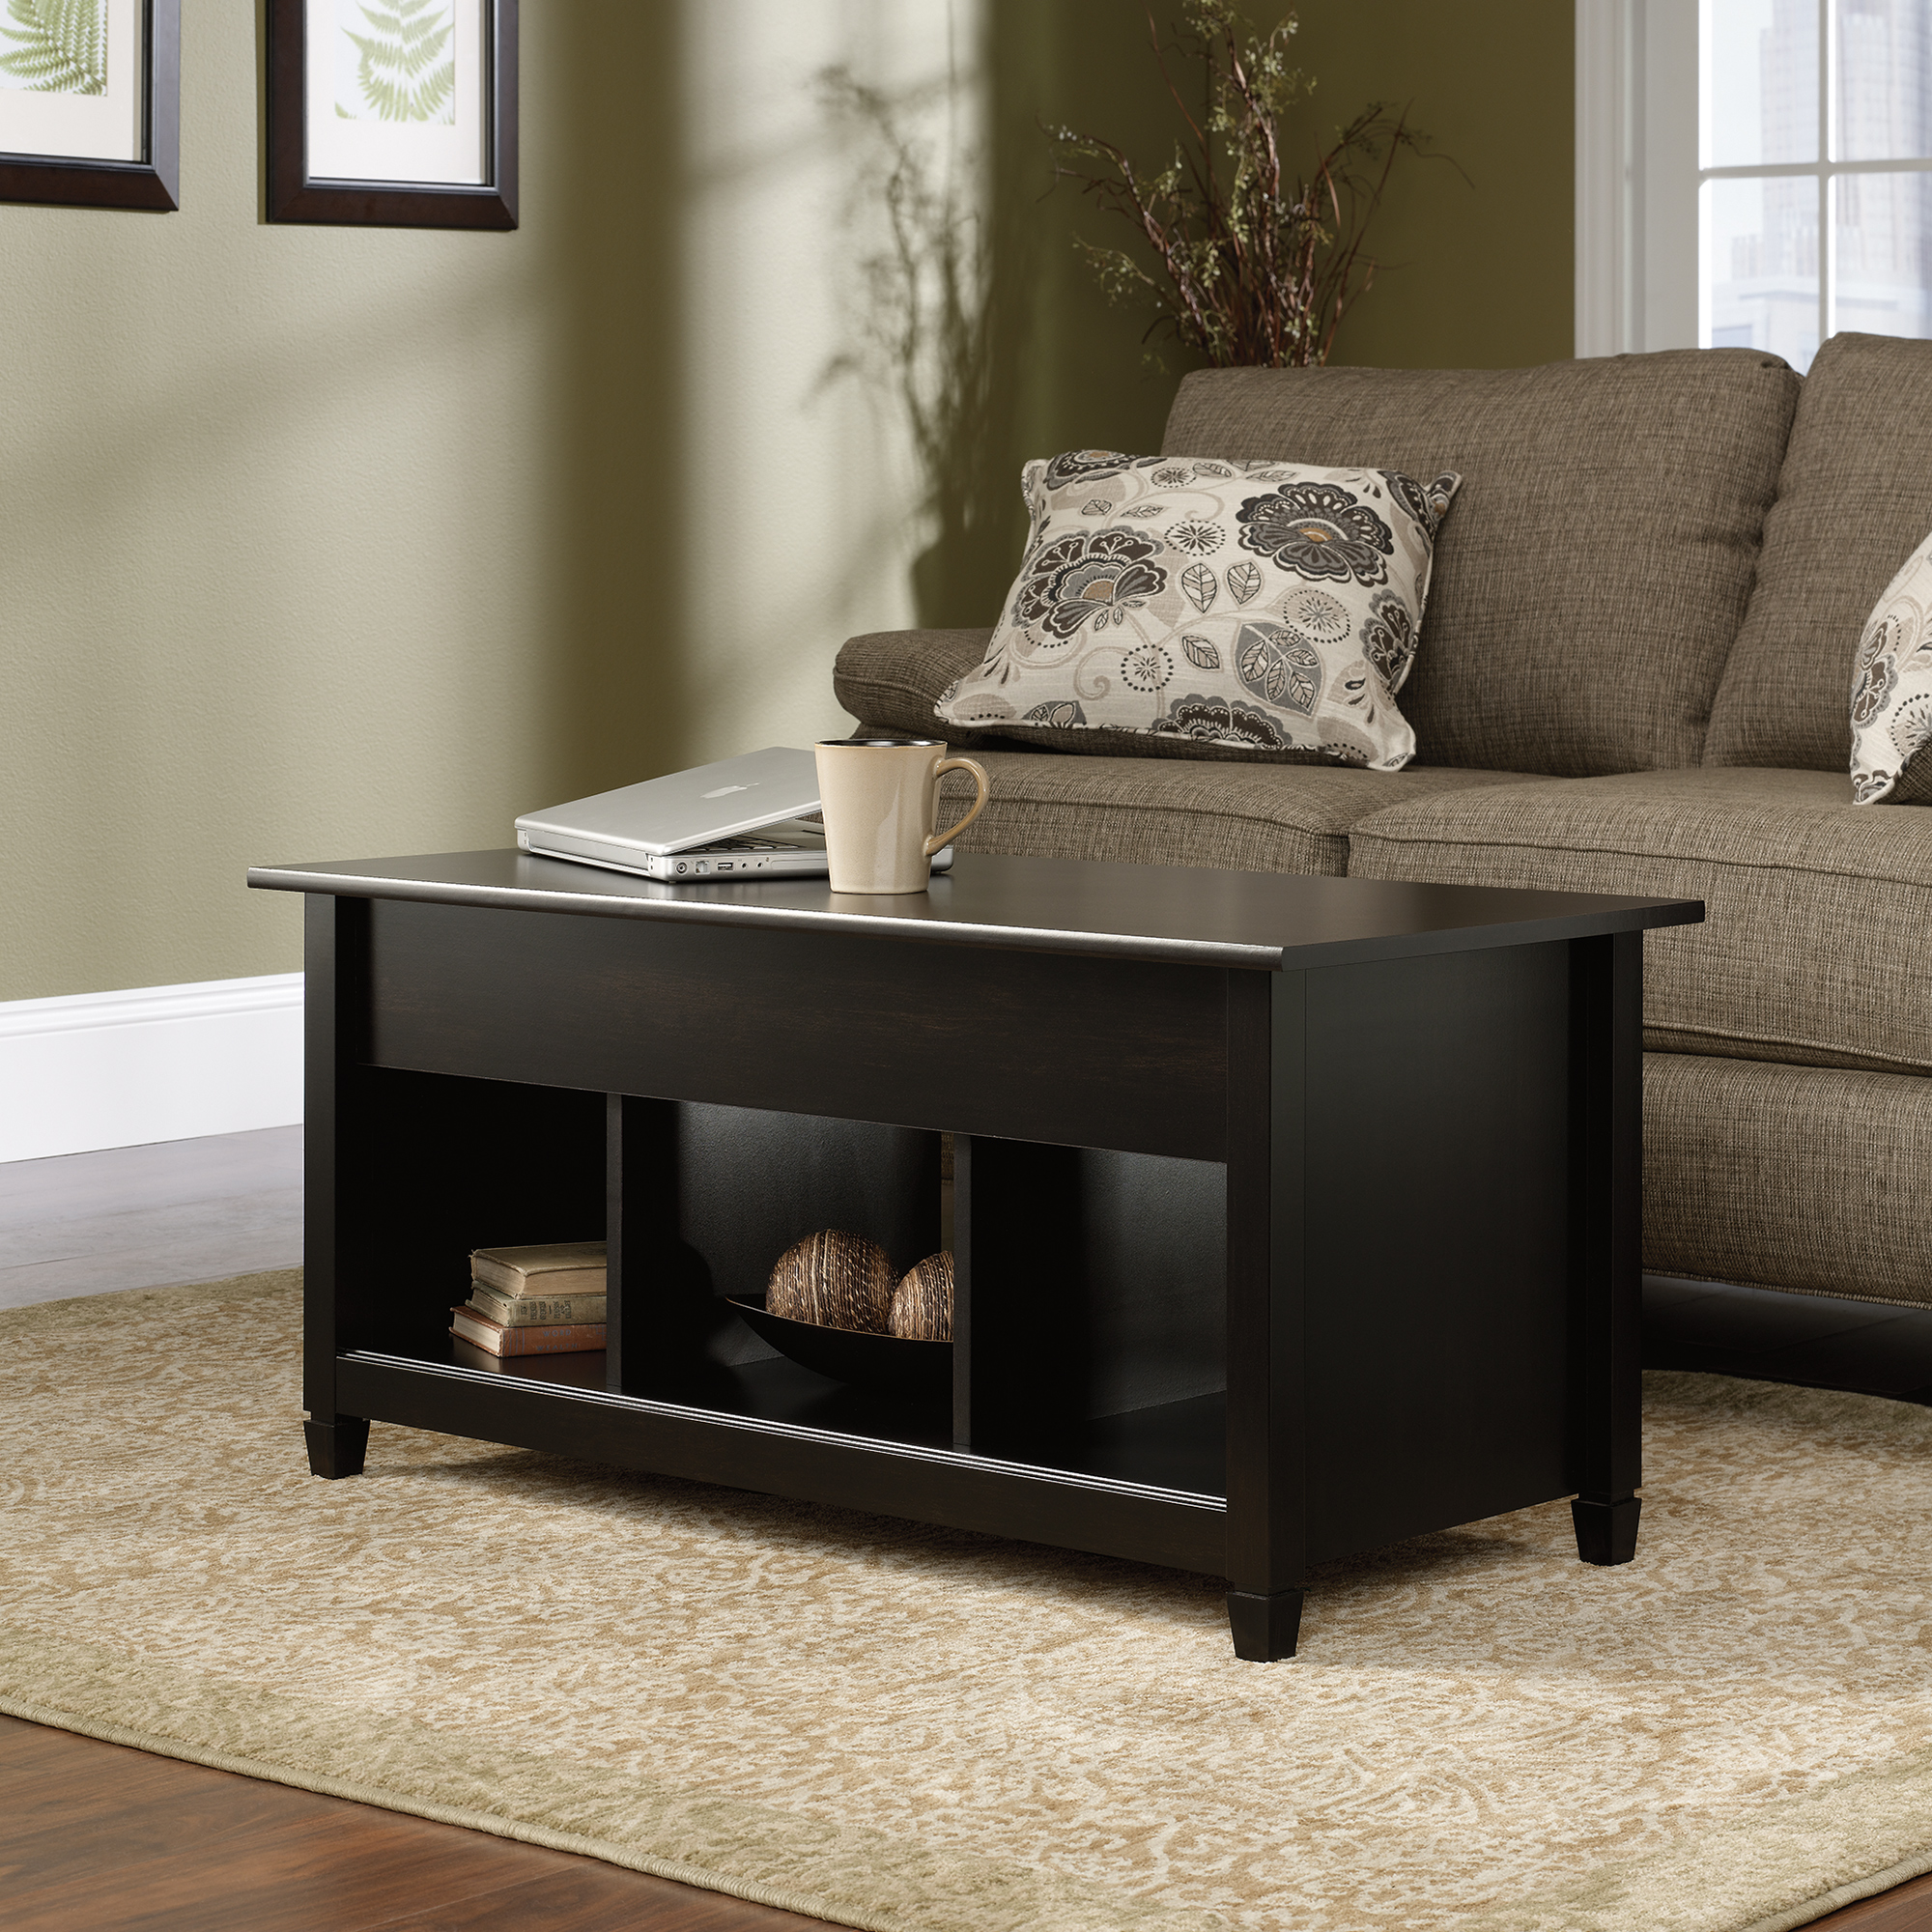 lift top coffee table accent tables trunk style light oak lucite faux marble full size oval with storage outdoor patio cooler concrete set lazy boy furniture reviews mid century